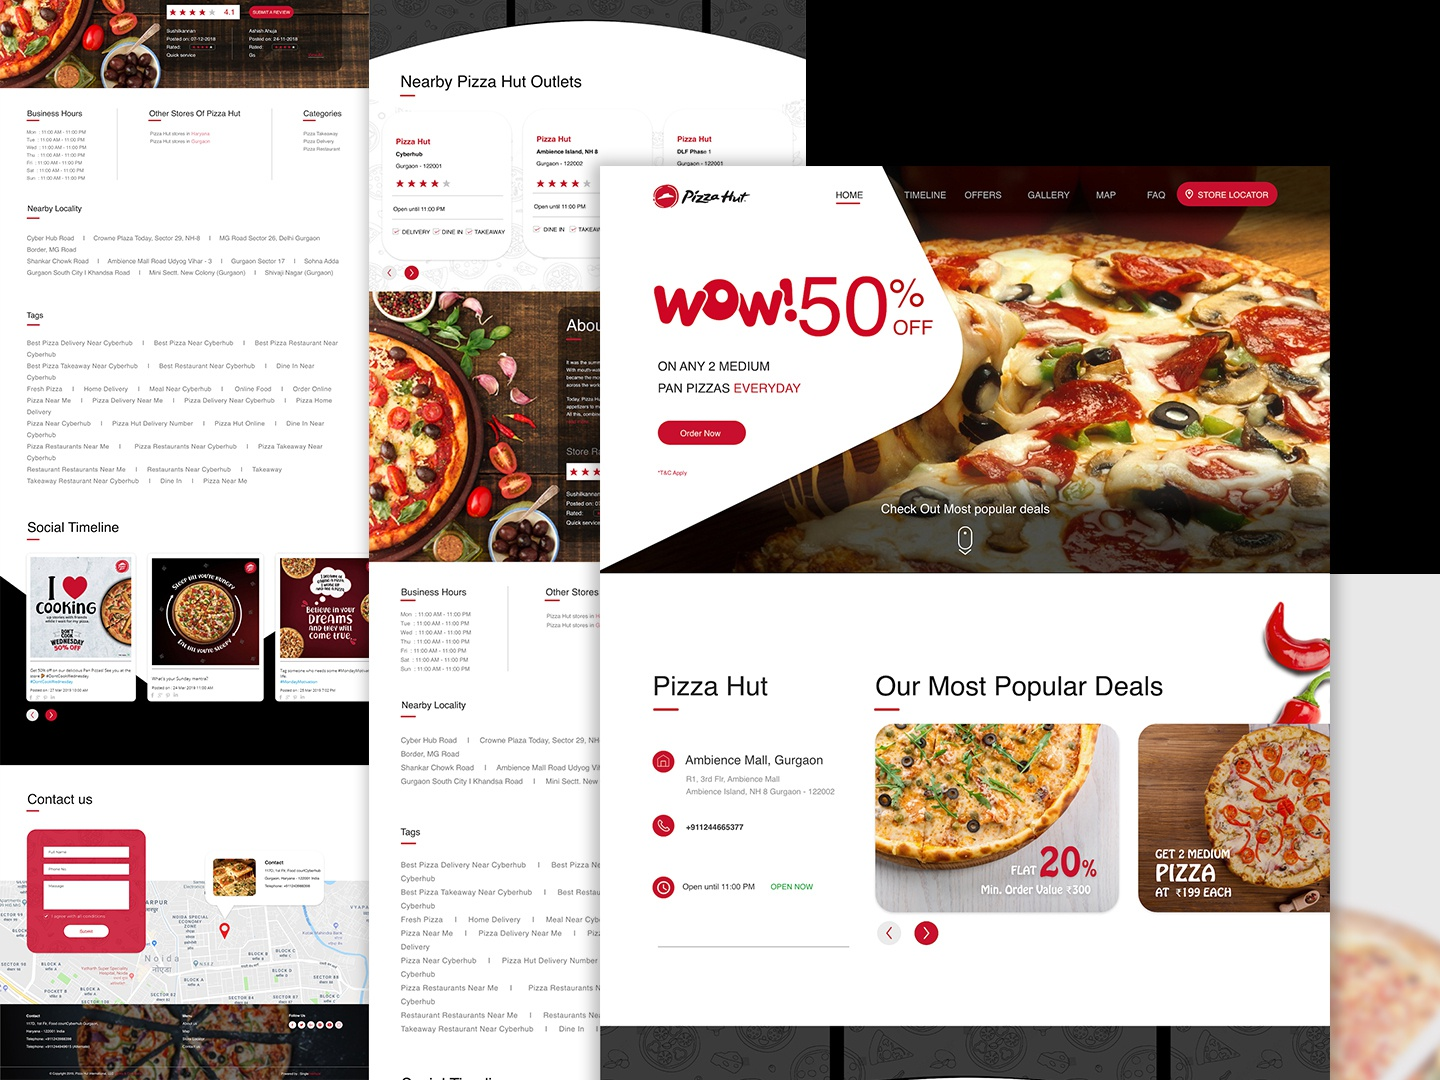 pizza hut landing page innovation pizza hut food website landing page design website desigien observation design ui creation concept branding brand identity